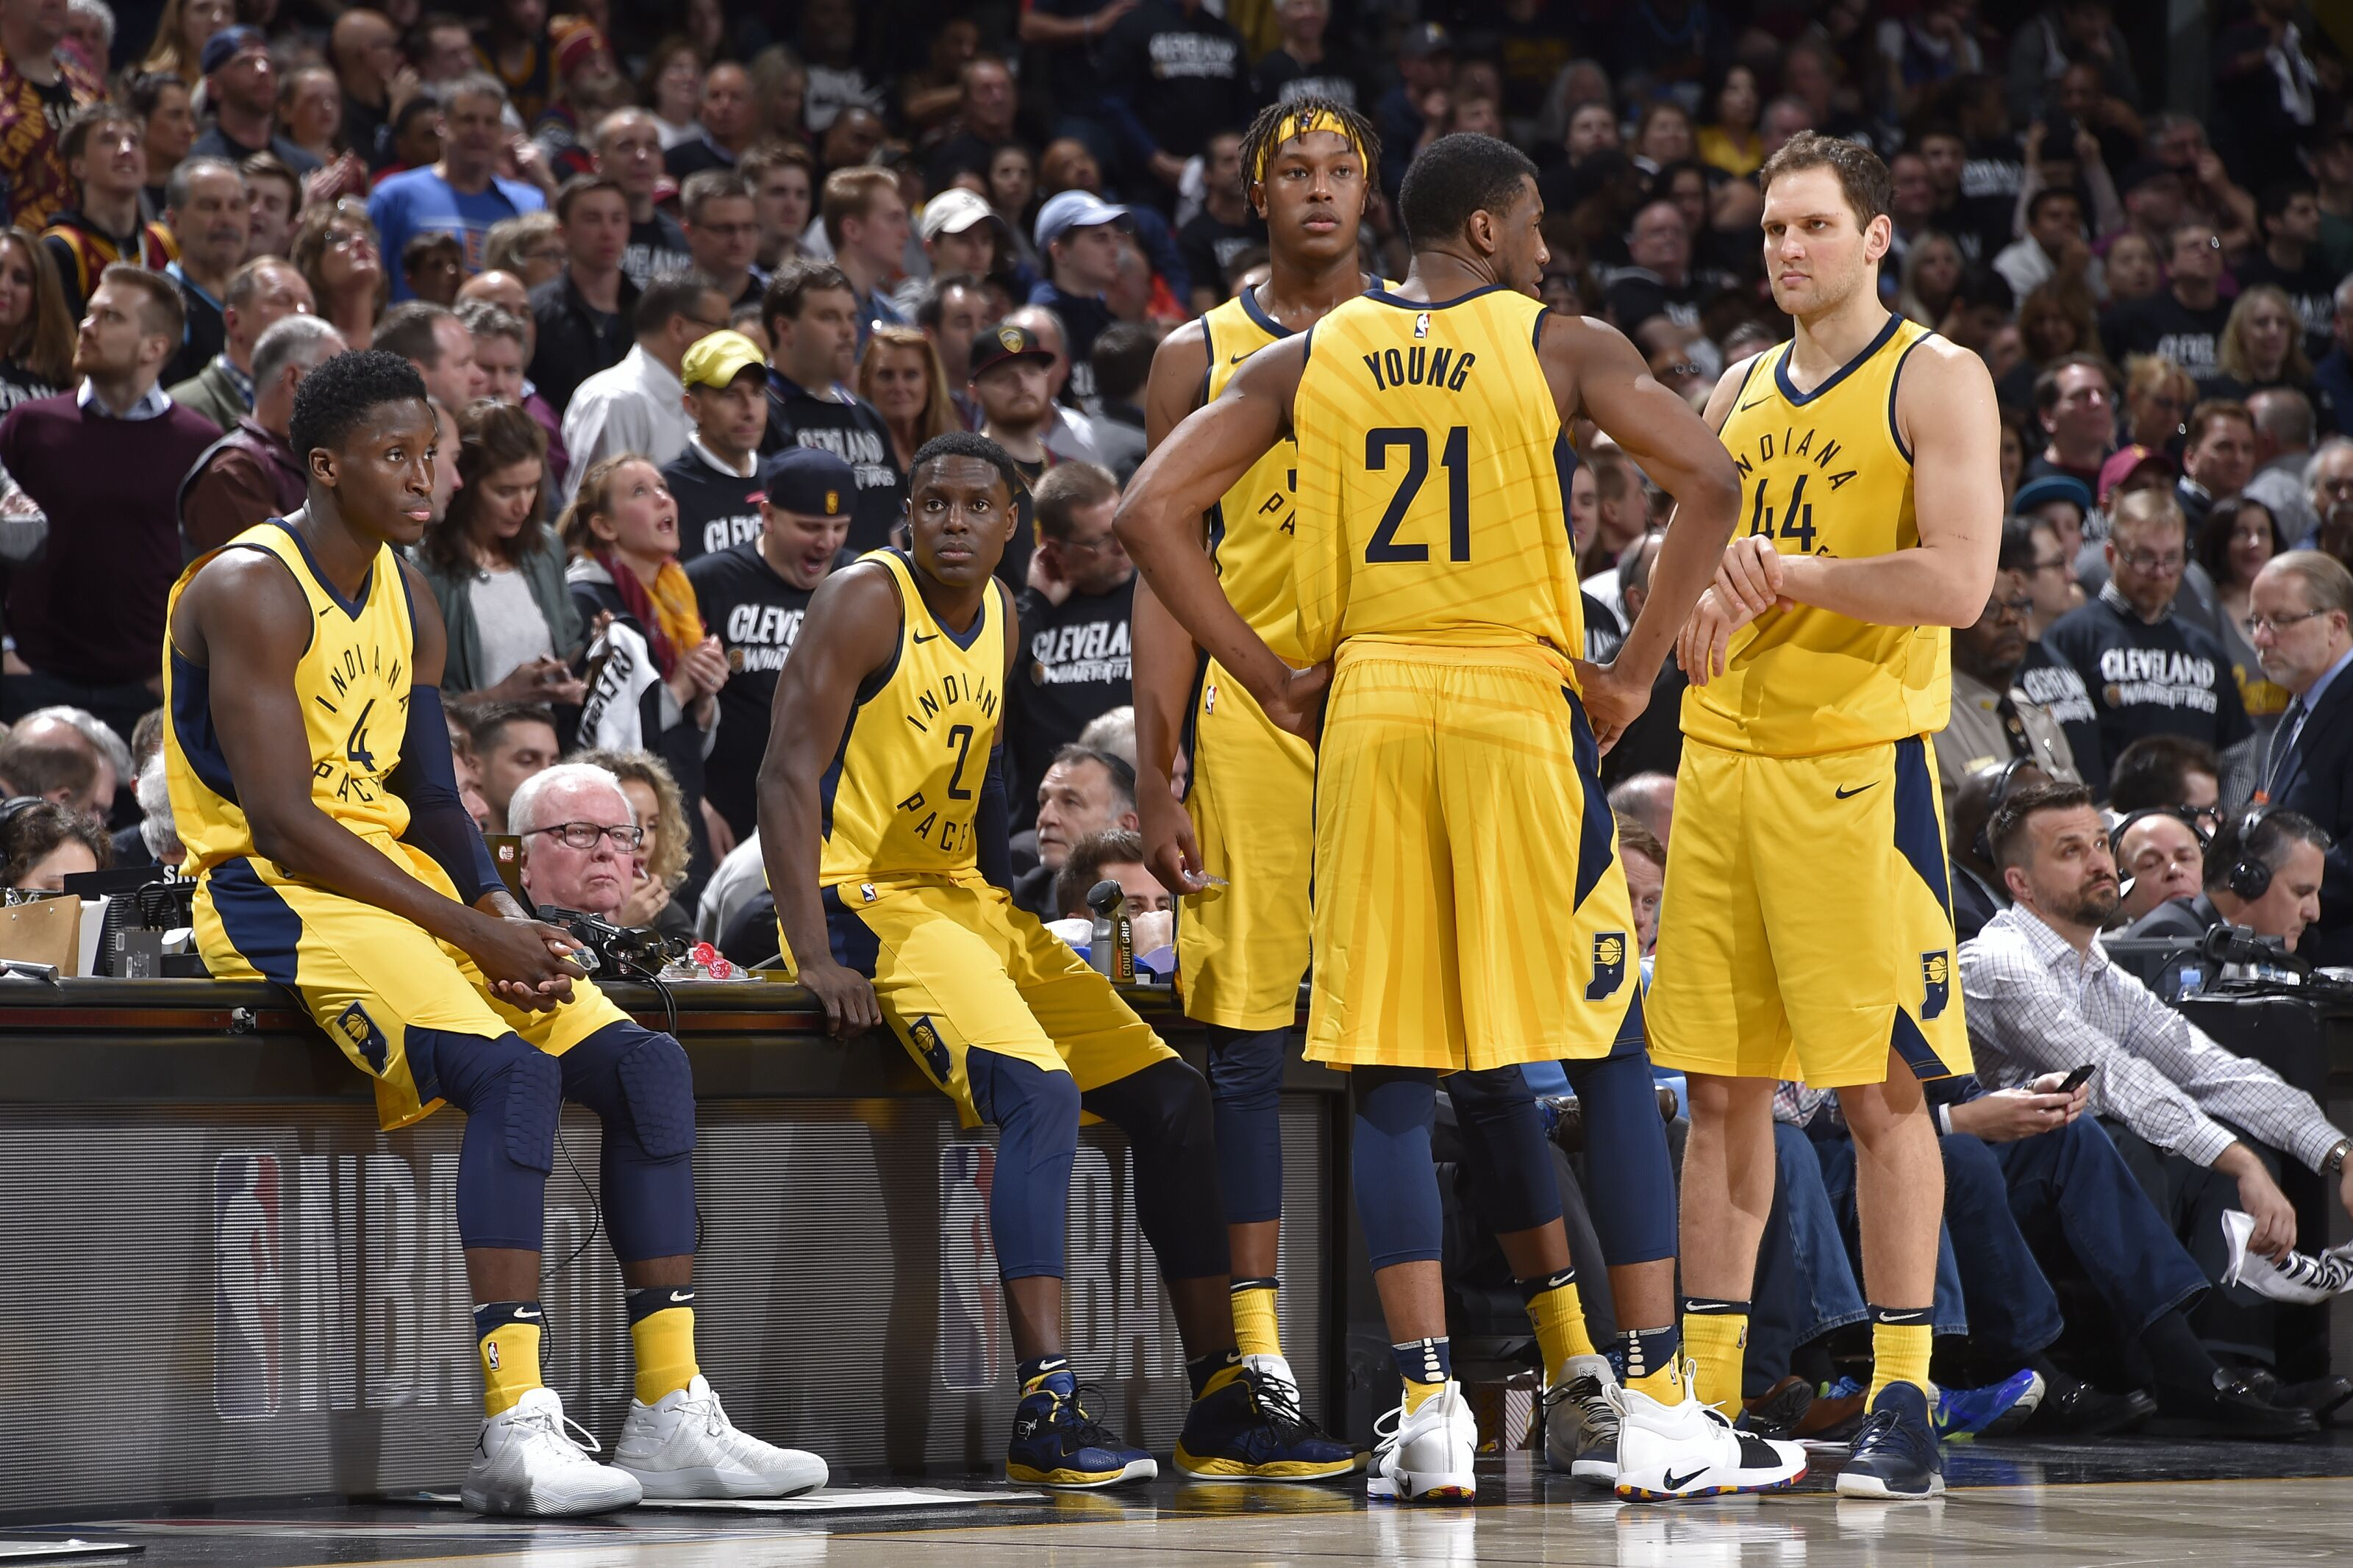 The Indiana Pacers starters ratings in NBA 2K19 are interesting